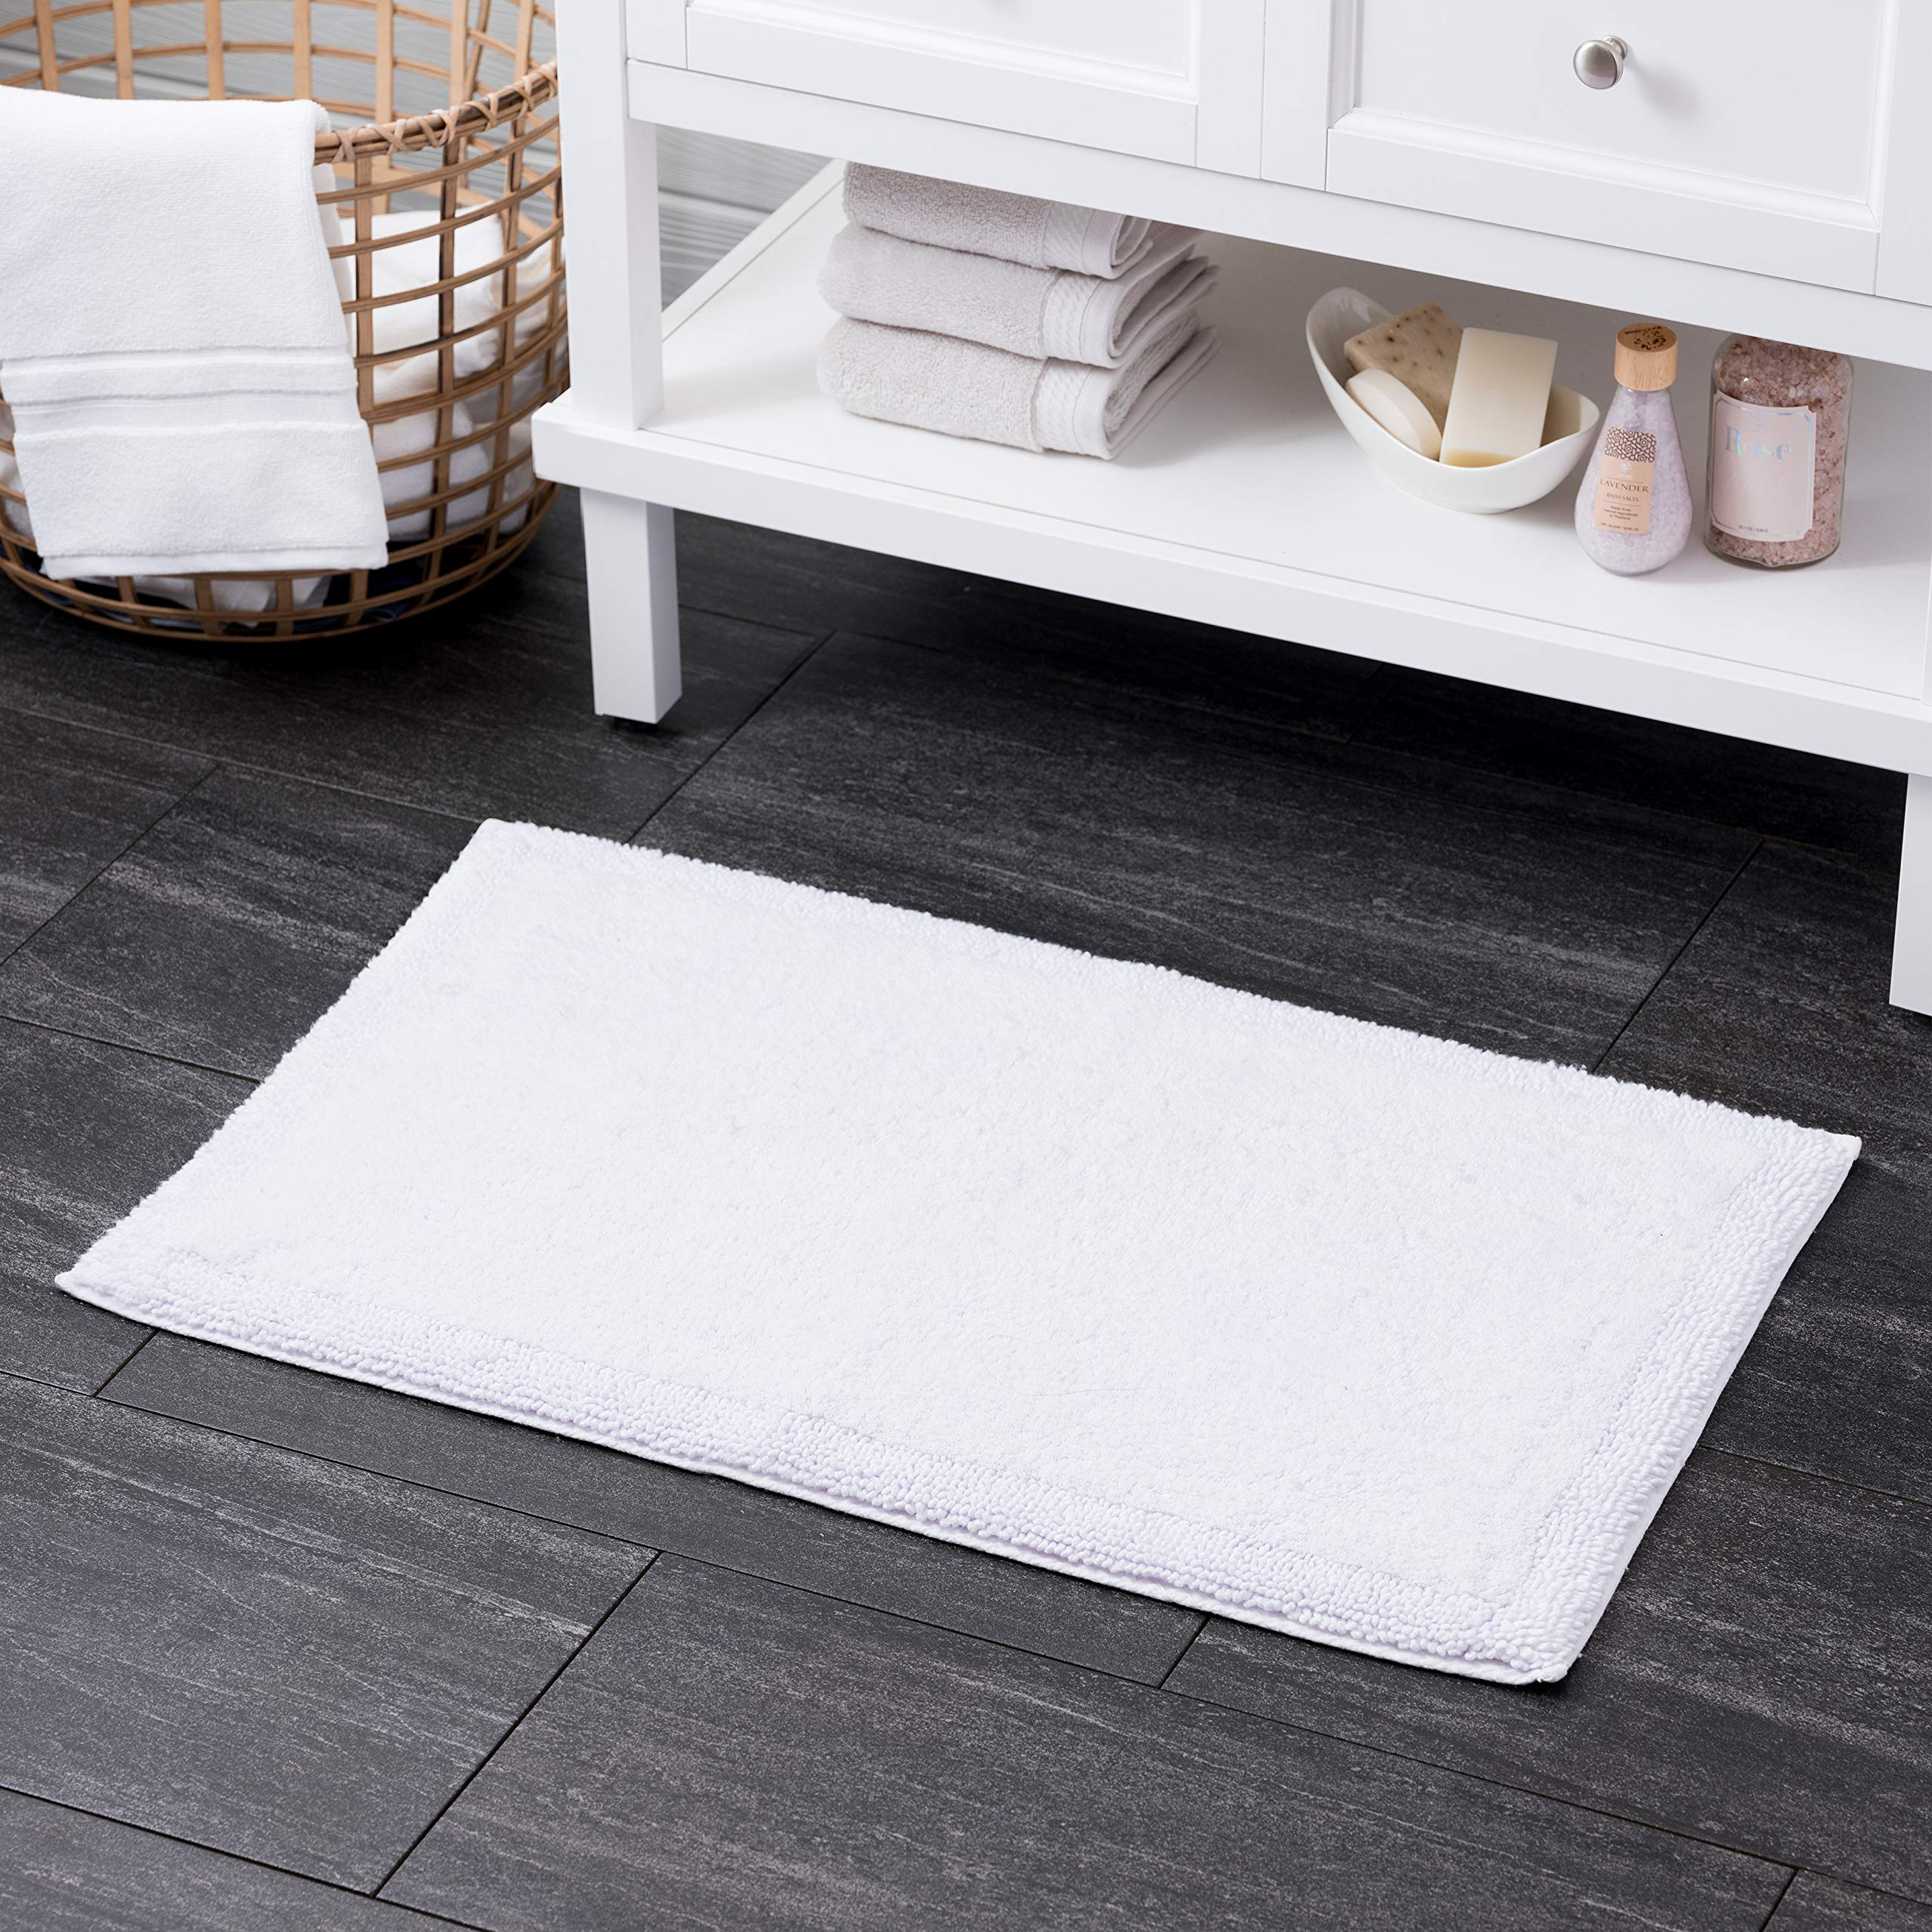 """Welhome 100% Turkish Cotton Bathroom Rug - Luxurious - Soft & Thick - Highly Absorbent - Hotel Spa Collection - 21""""x 34"""" -White"""